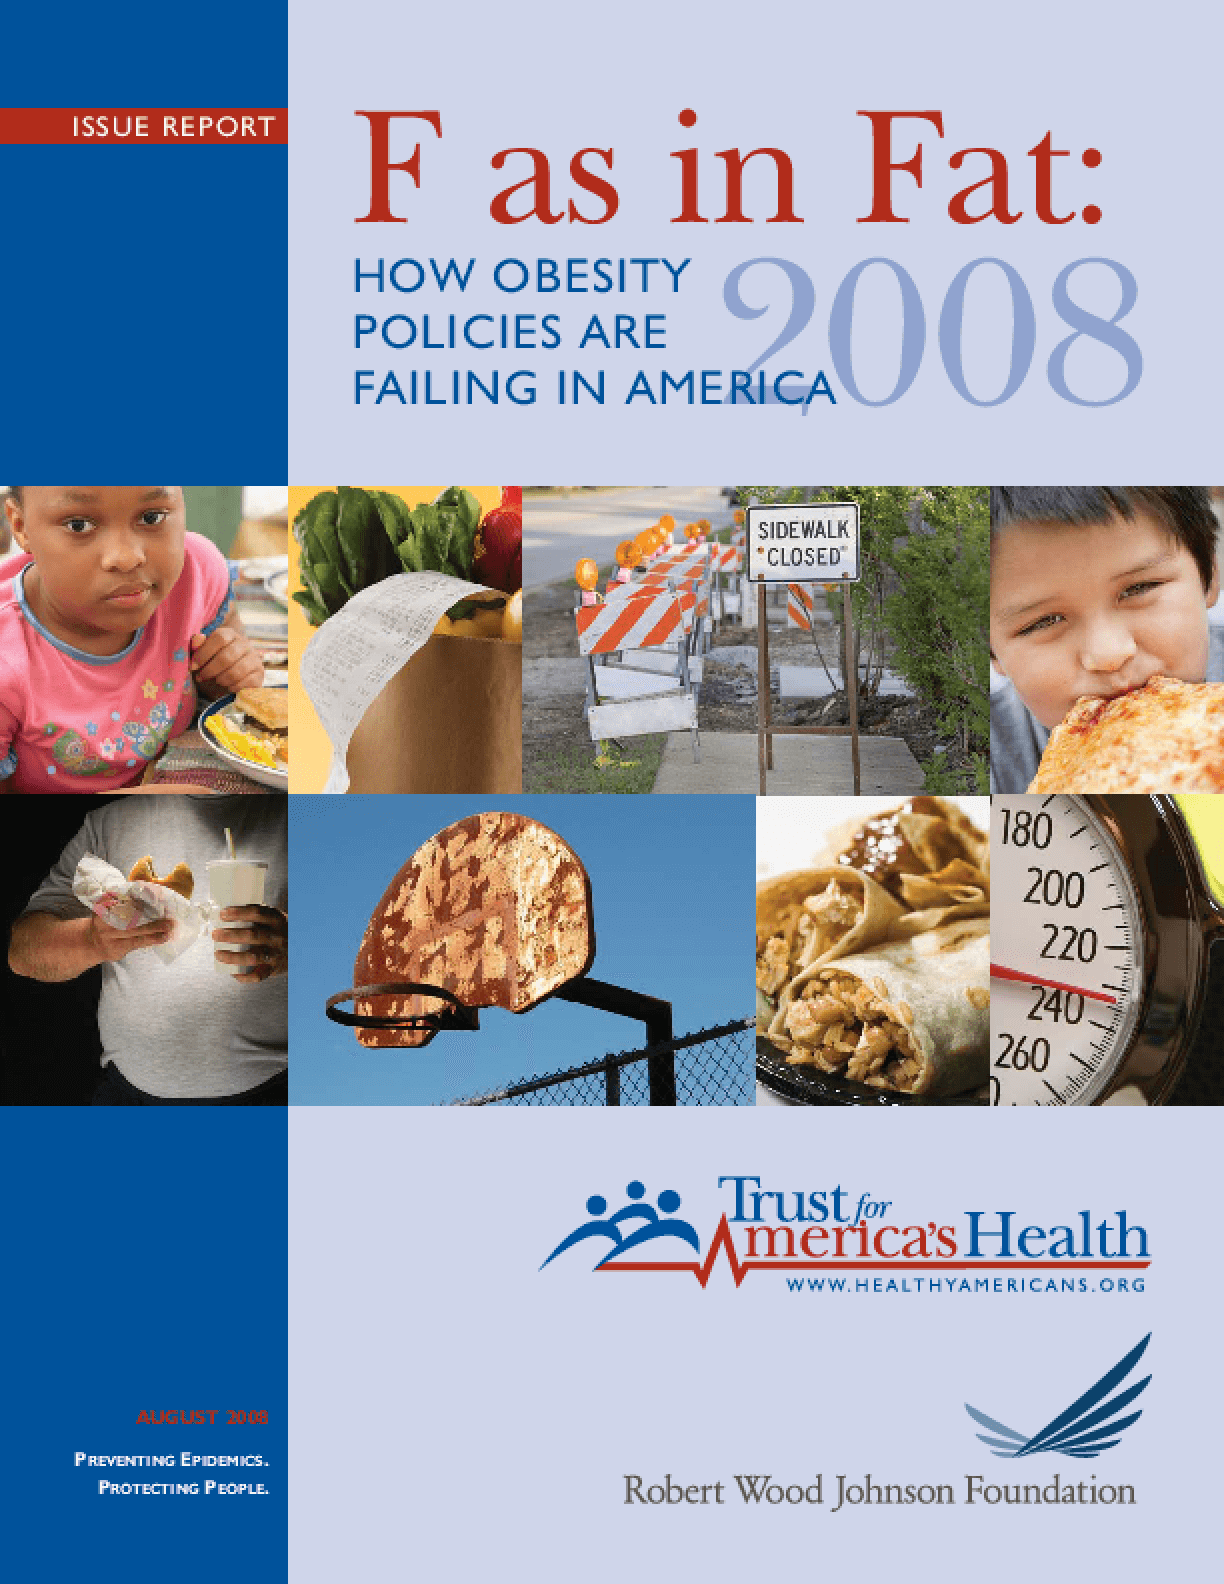 F as in Fat: How Obesity Policies Are Failing in America, 2008